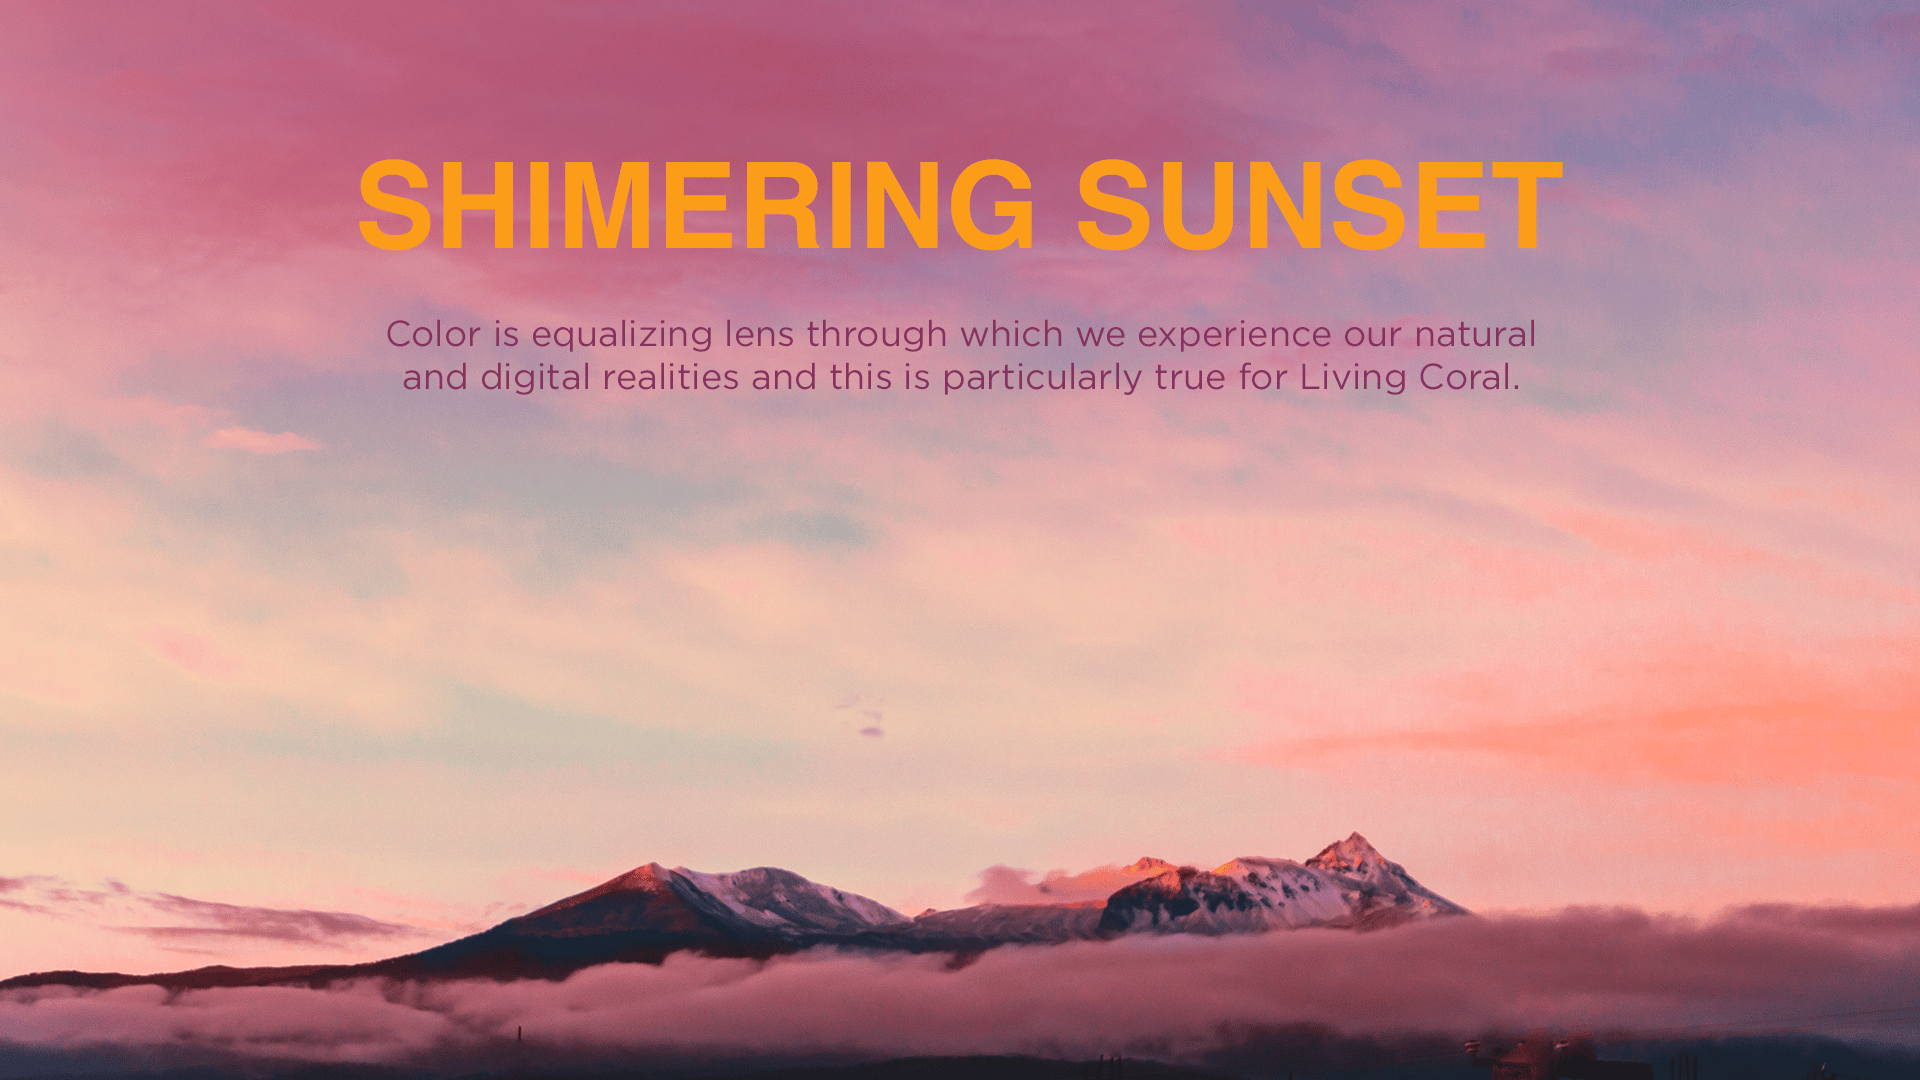 An image with shimmering sunset colors inspired by Coral Living